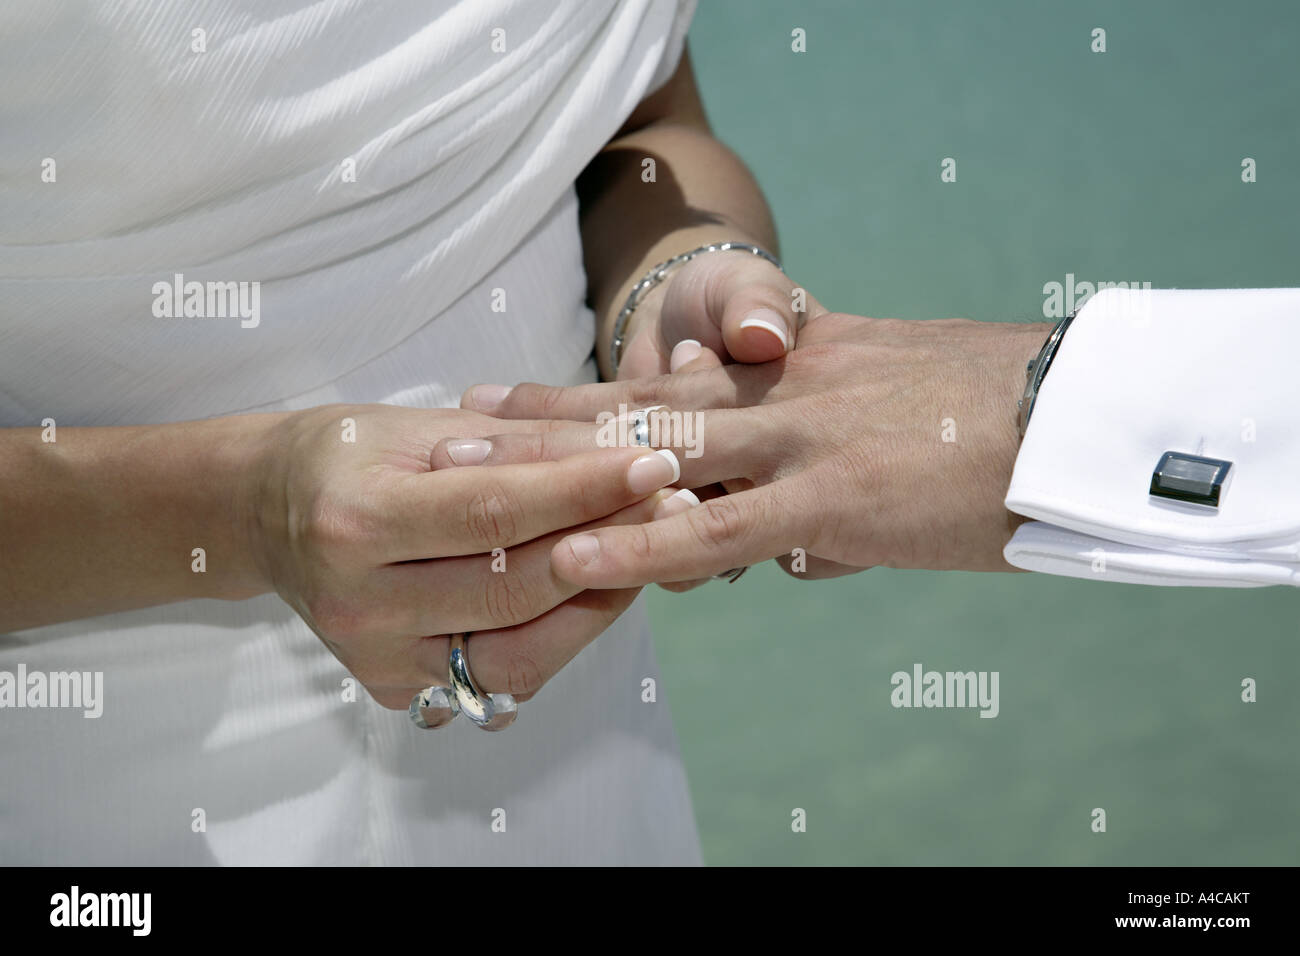 close up of a woman's hand putting wedding ring on man's hand - Stock Image